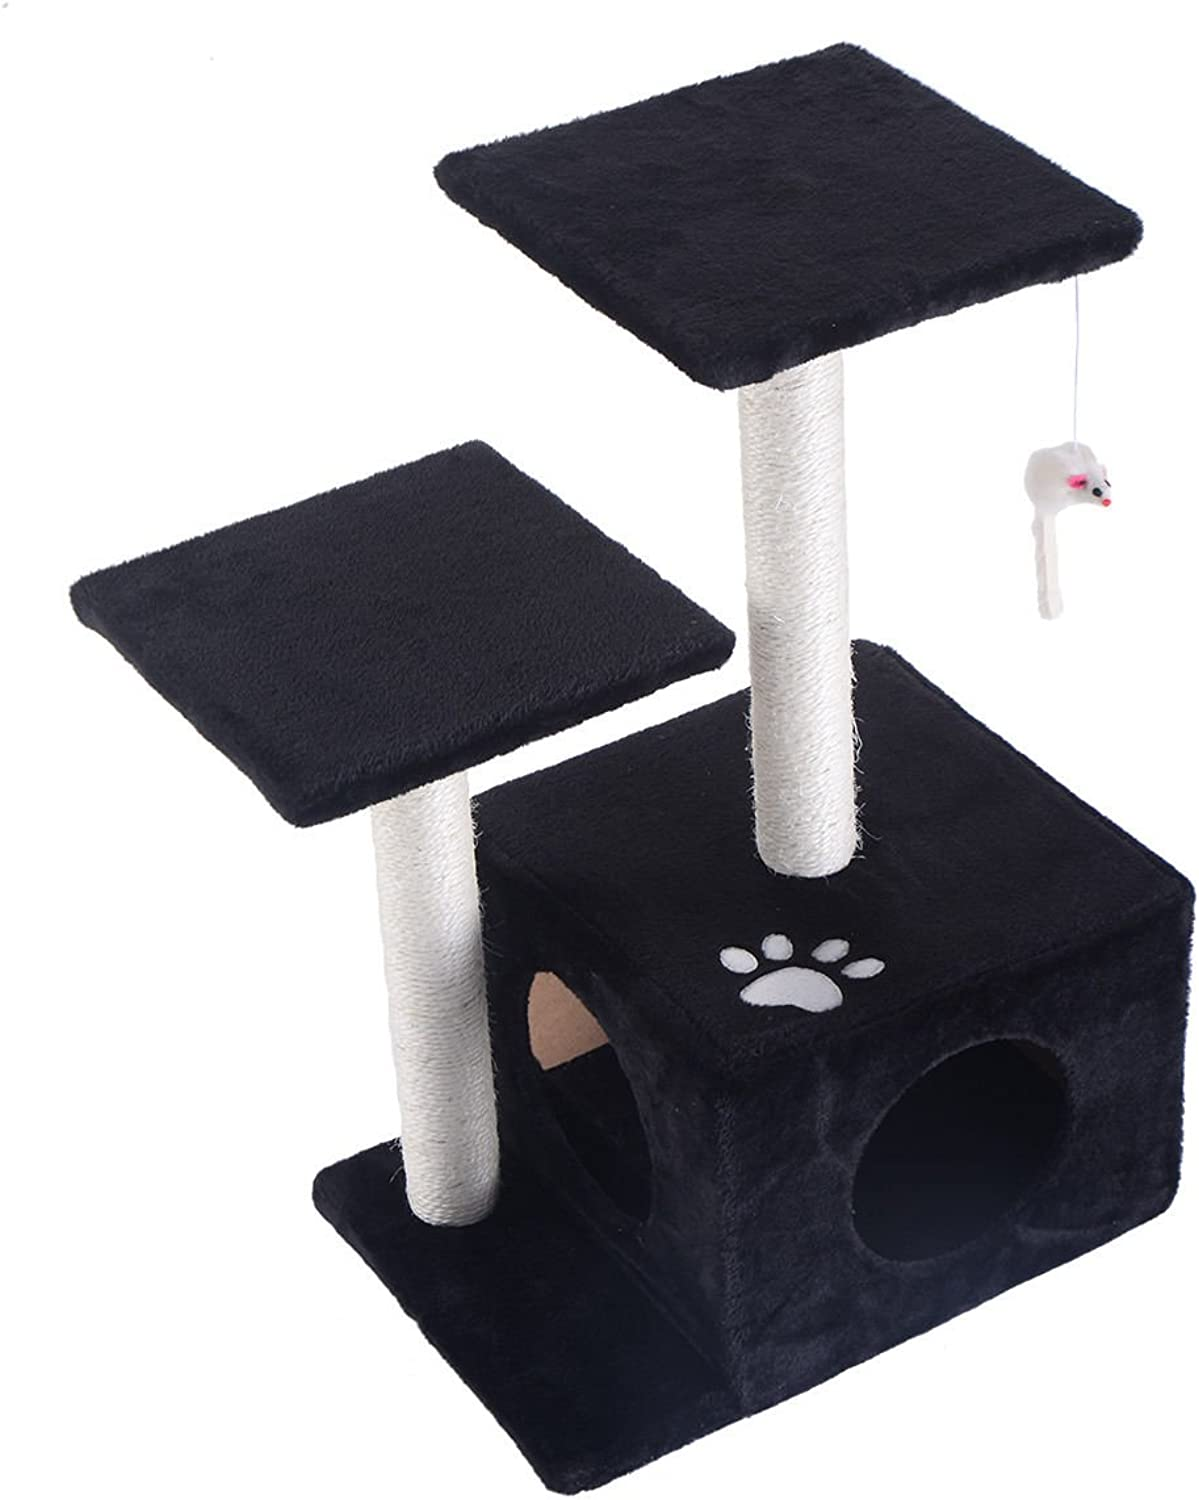 27  Cat Tree Deluxe Condo Furniture Play Toy Scratch Post Kitten Pet House Black